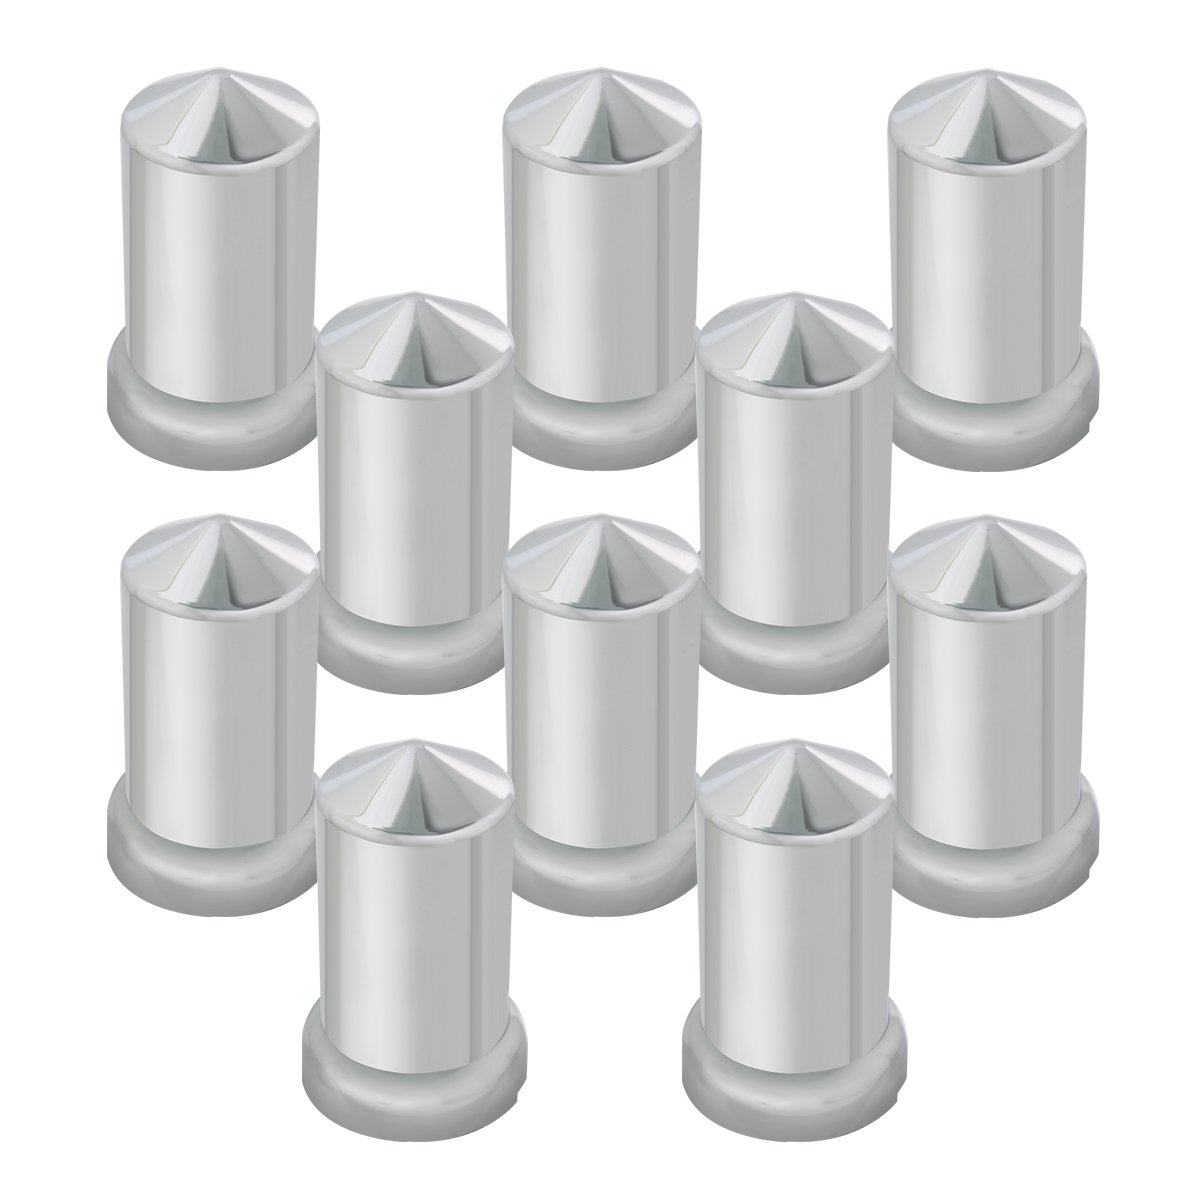 Grand General 10269SP Chrome 33mm x 3-1/8'' Plastic Pointed Push-On Nut Cover with Flange